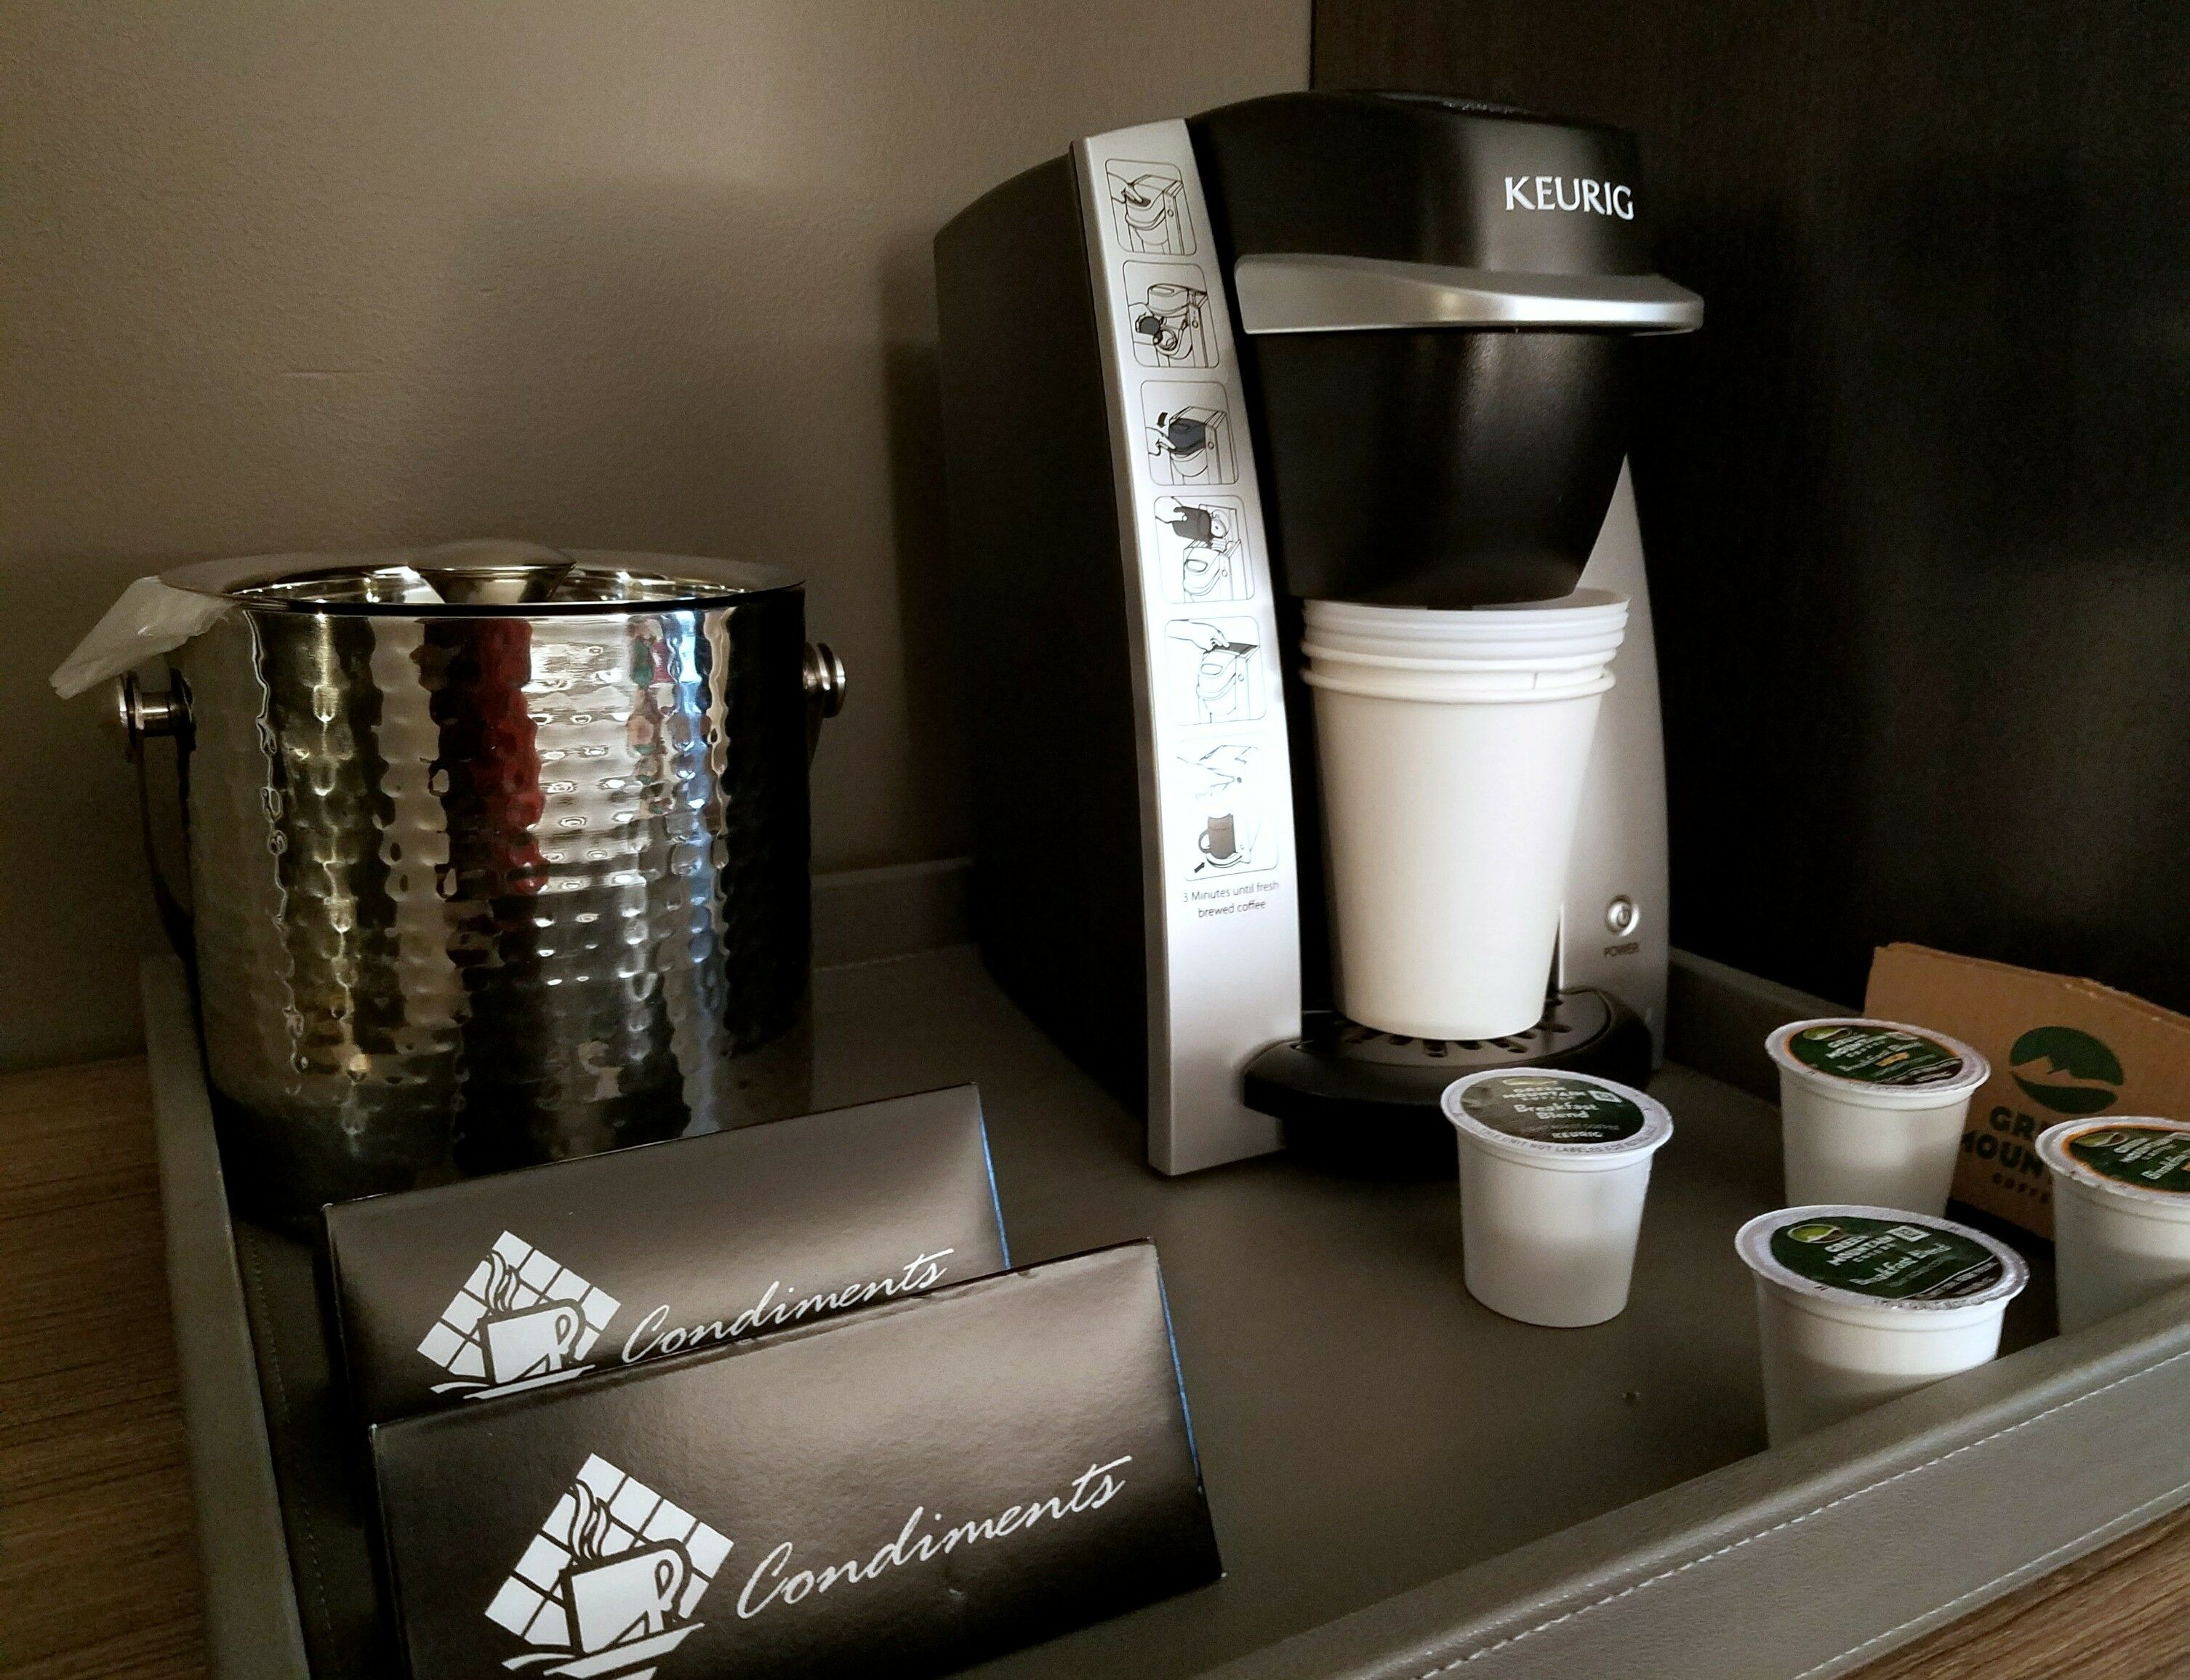 Keurig - The Guest House at Graceland | The Good Hearted Woman